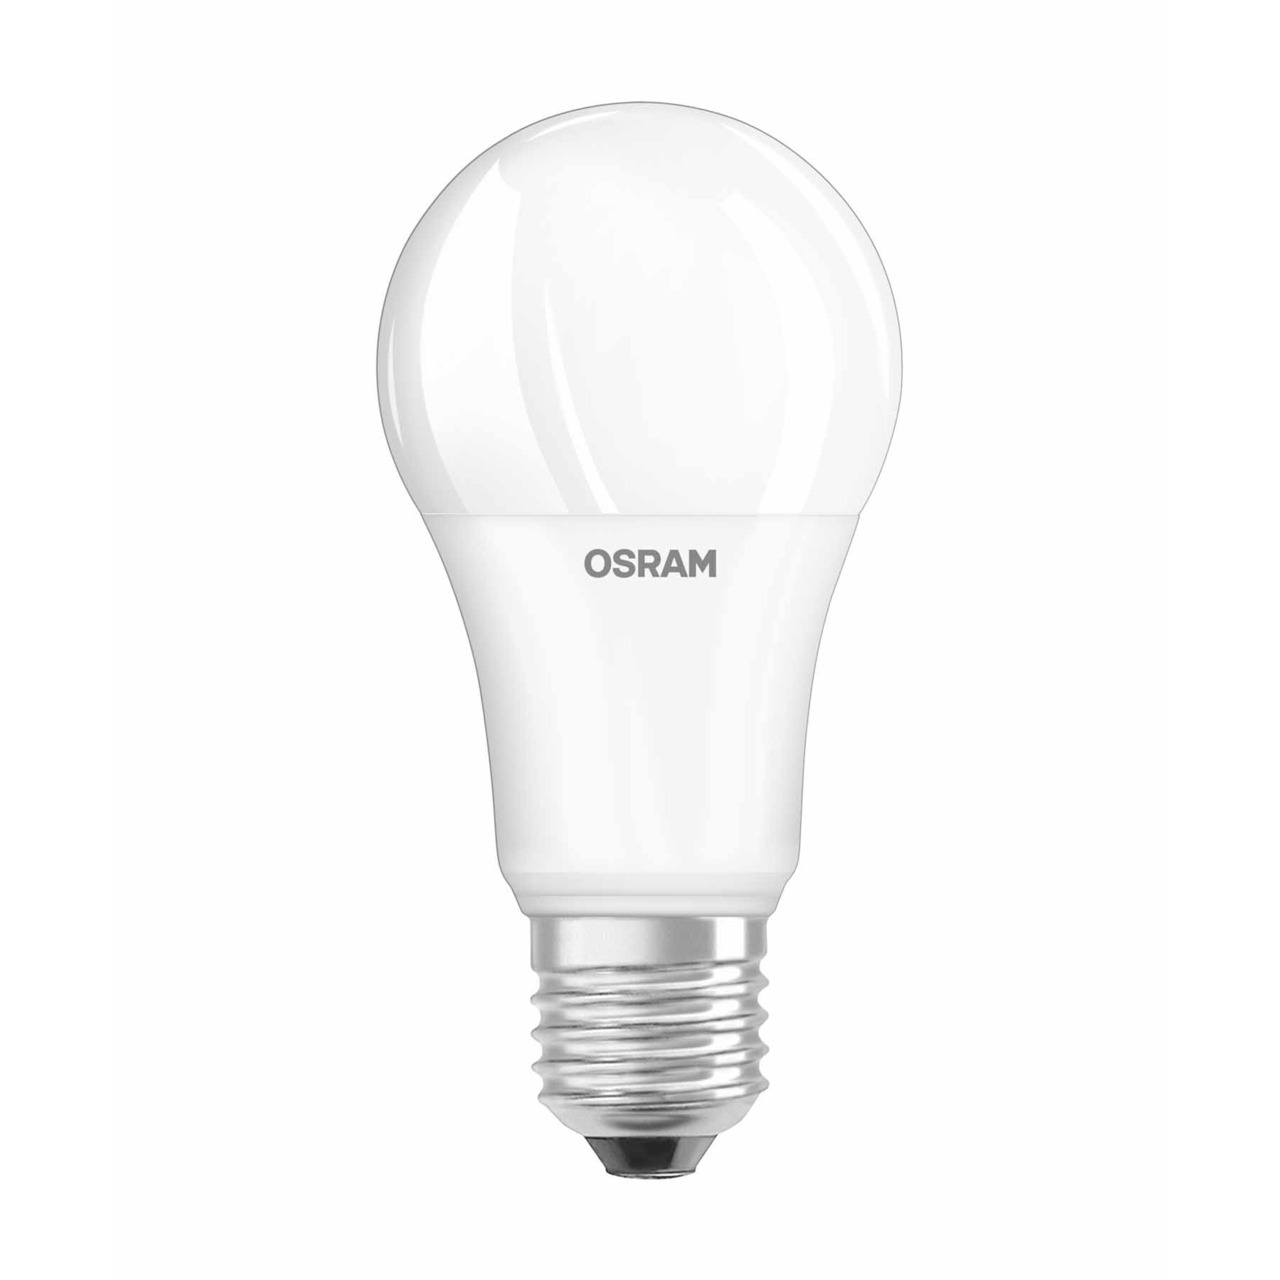 OSRAM LED STAR 14-5-W-LED-Lampe E27- neutralweiss- matt